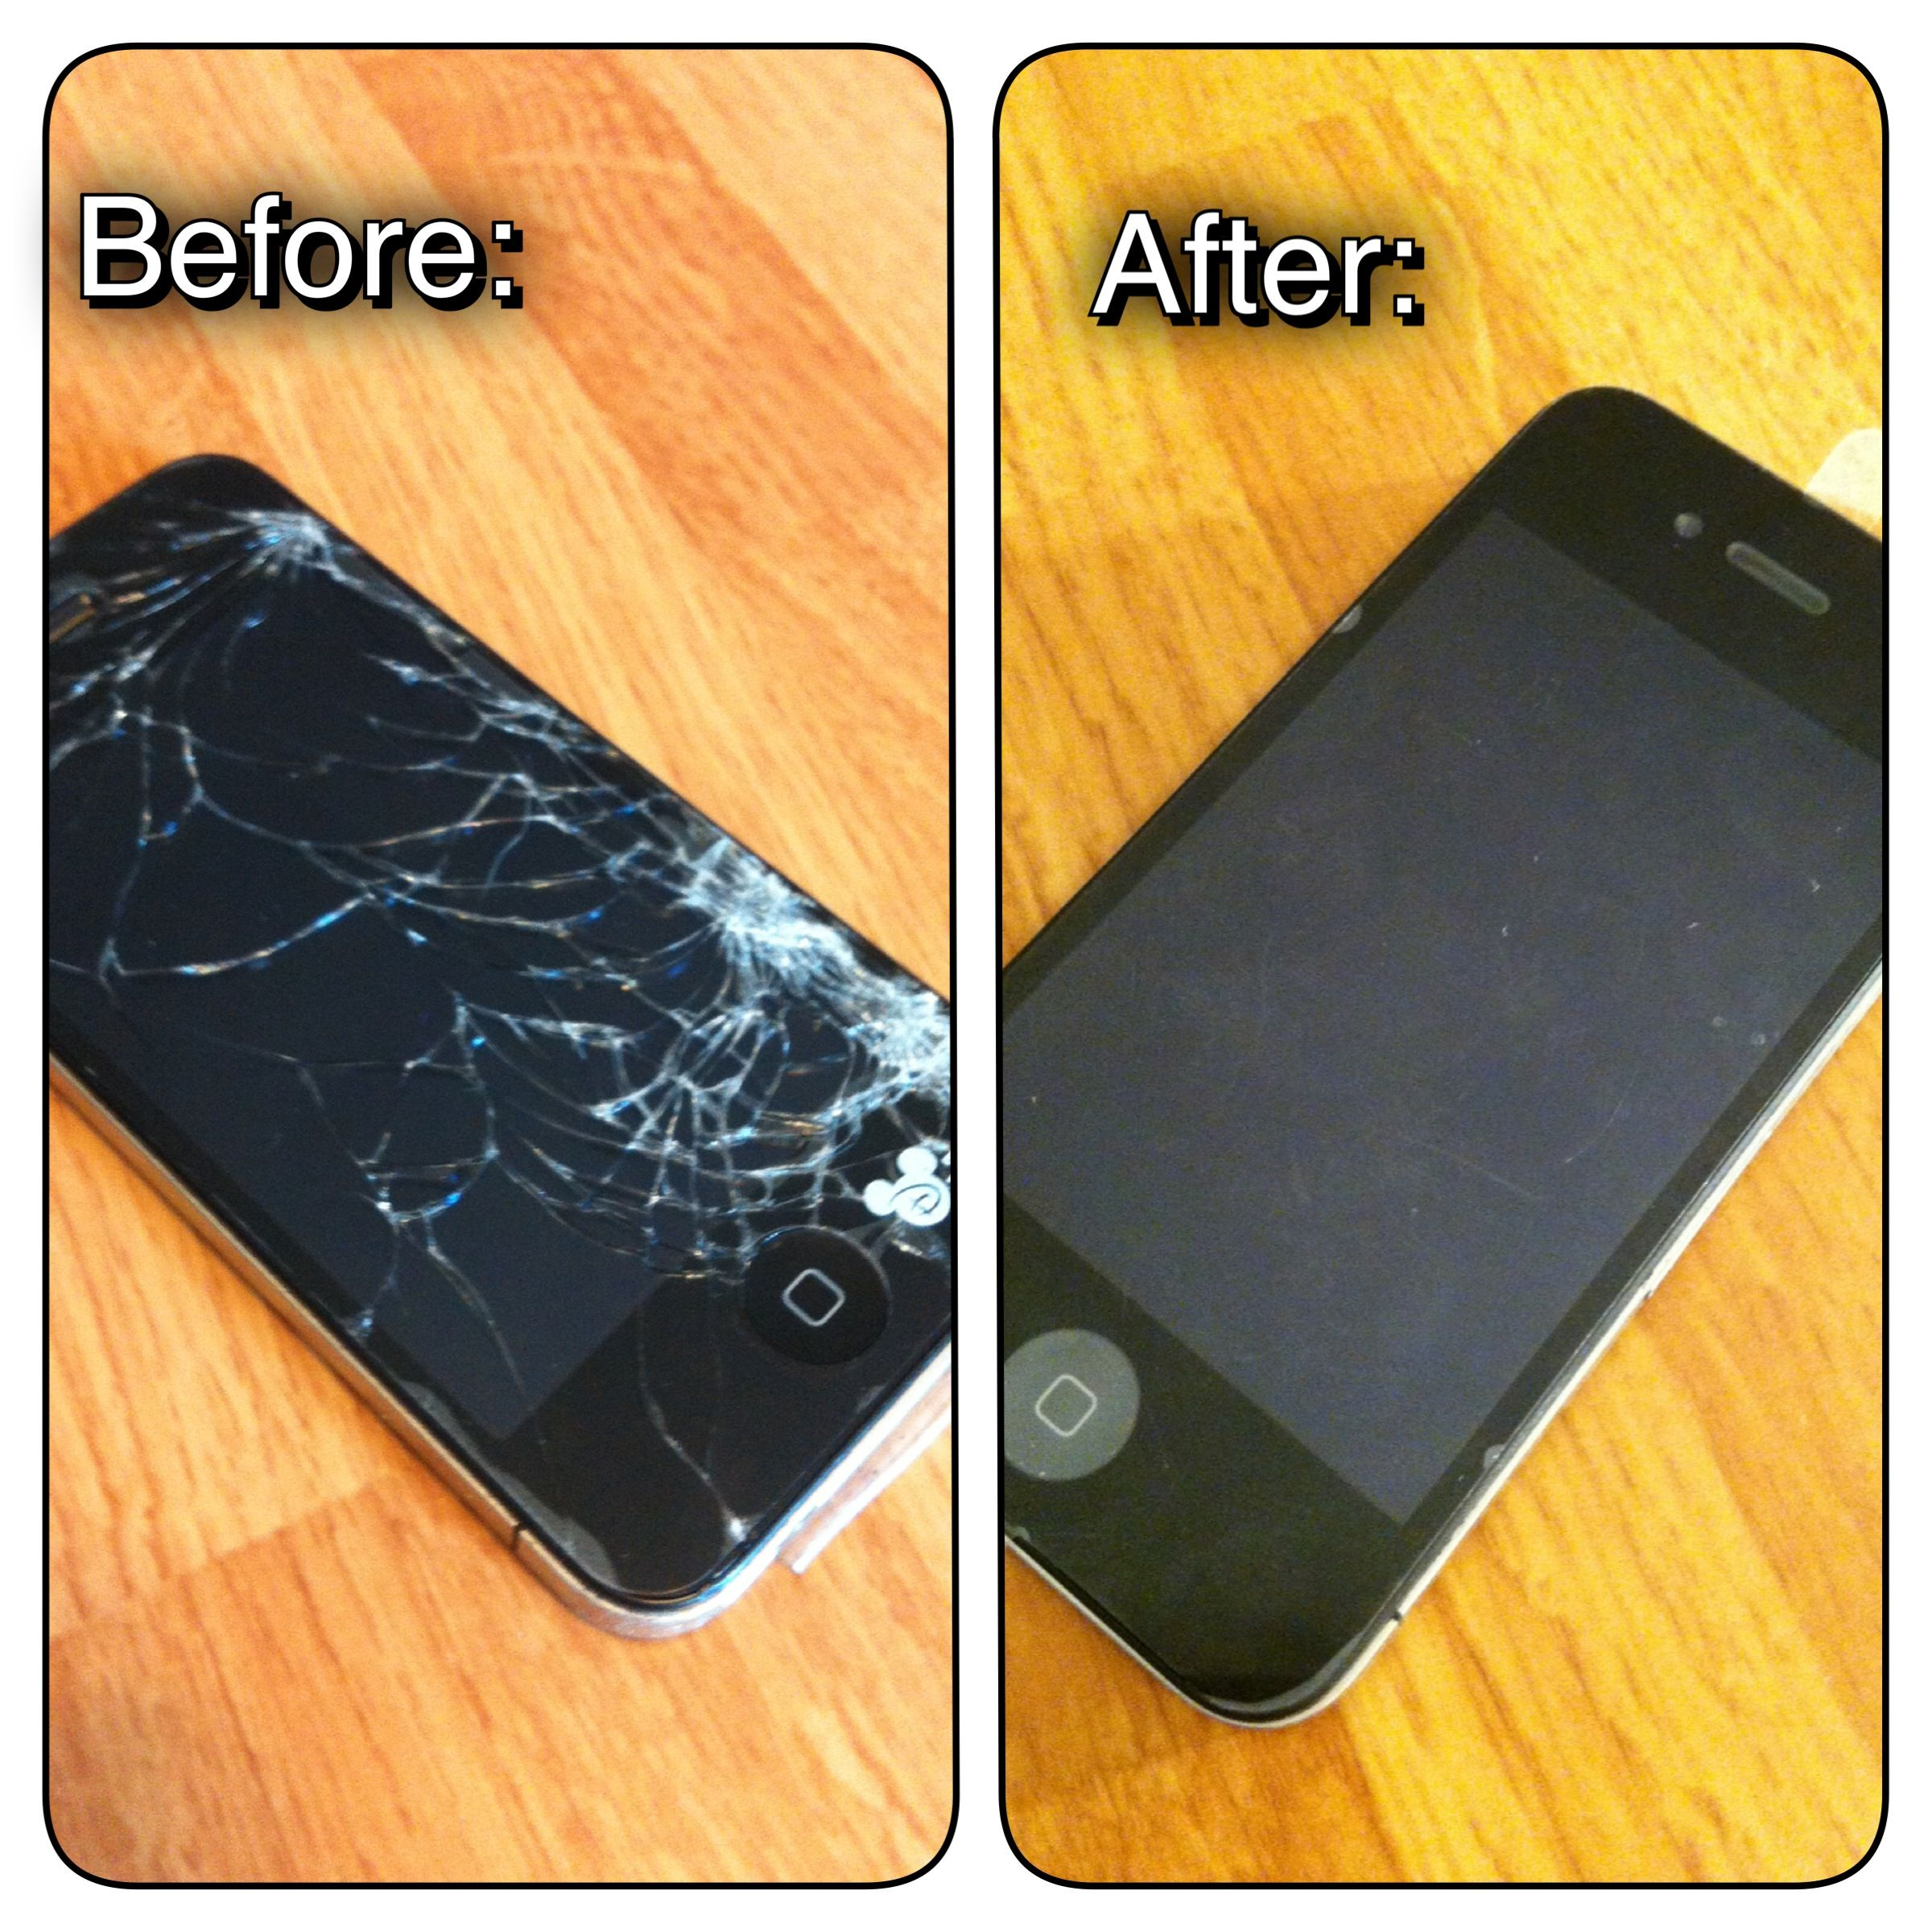 How to Replace a Broken iPhone Screen I will have to use this later